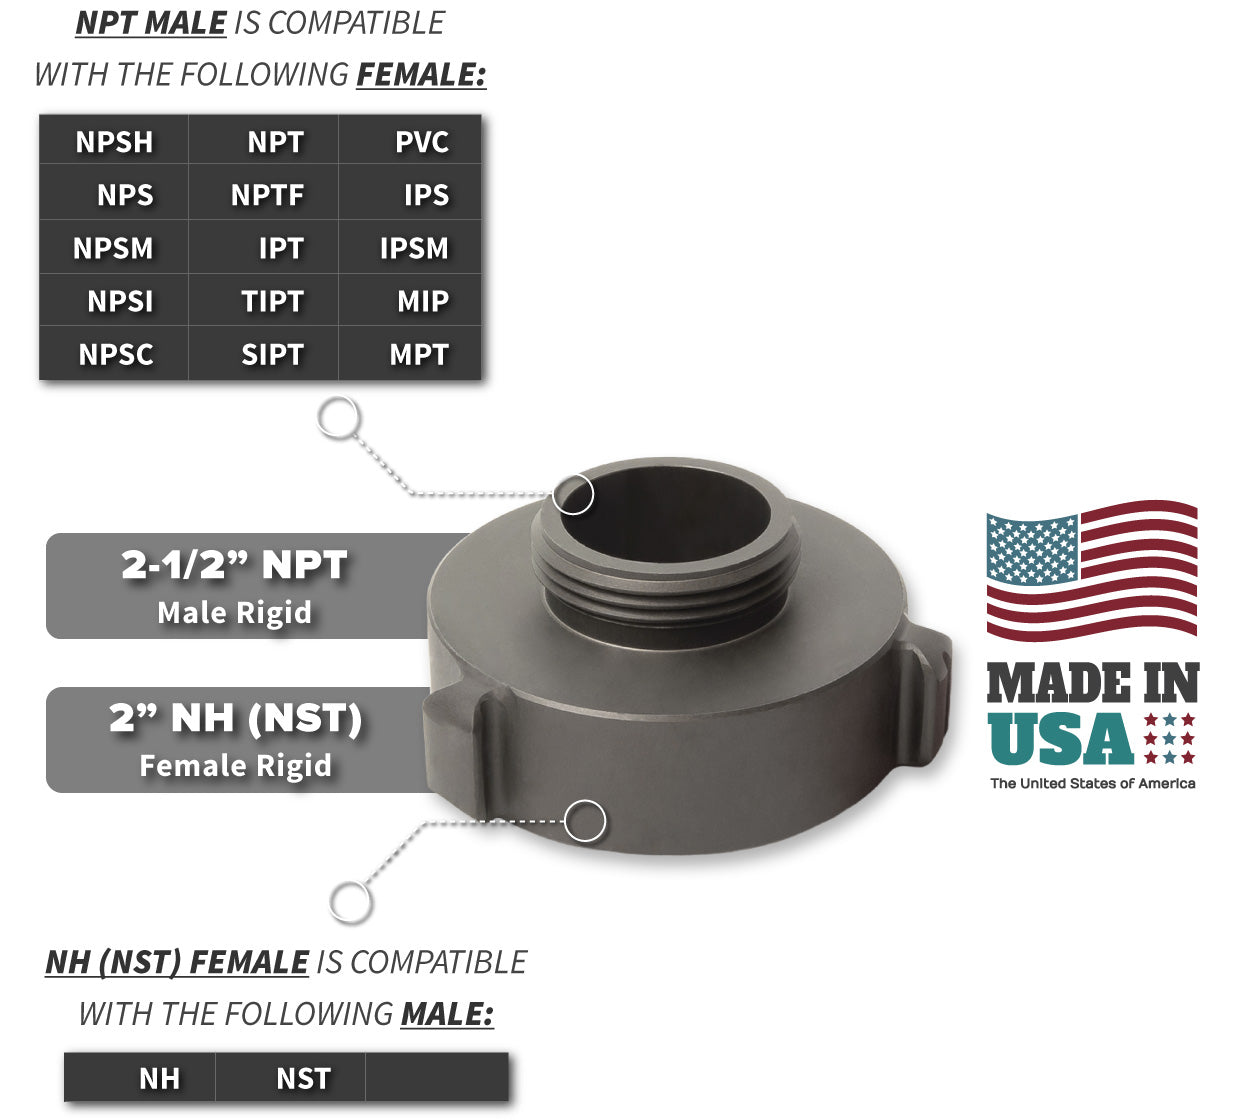 2 Inch NH-NST Female x 2.5 Inch NPT Male Compatibility Thread Chart